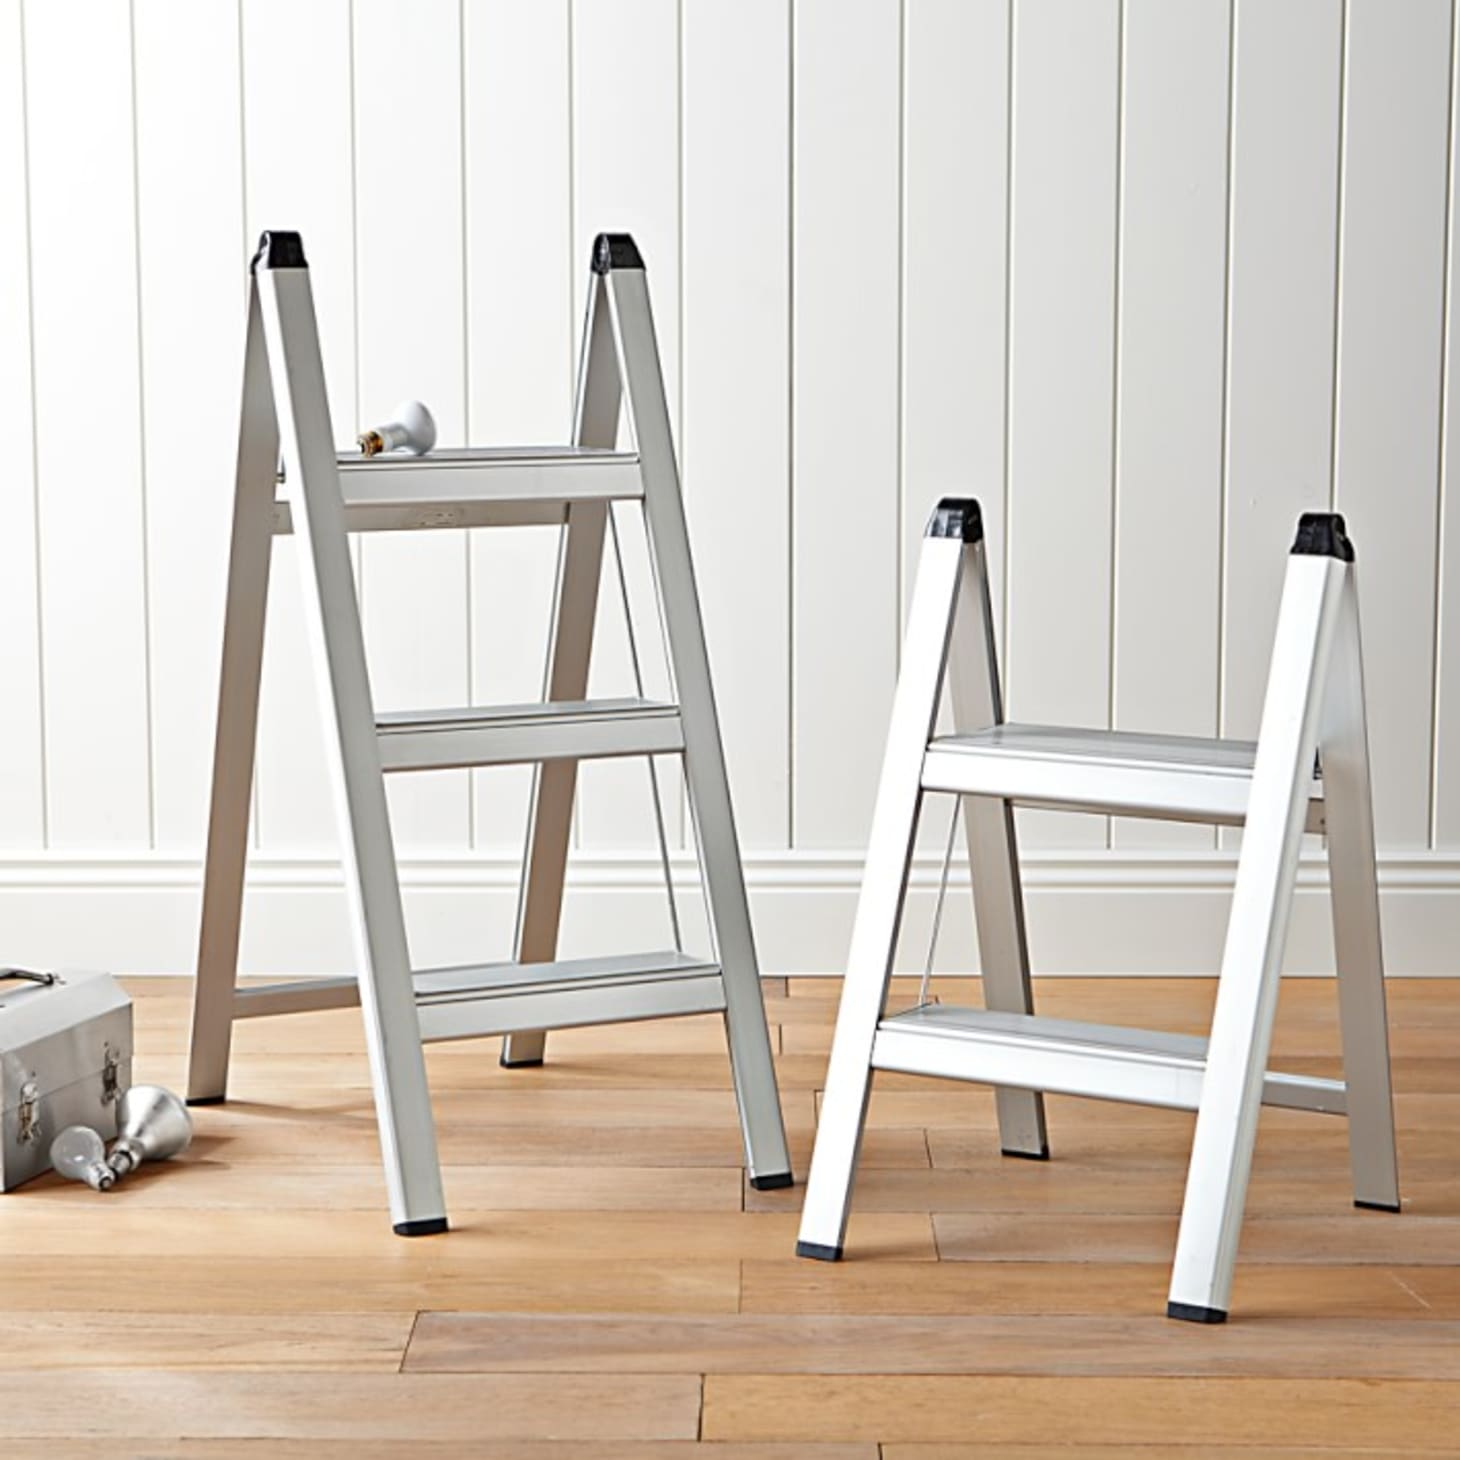 Groovy Best Step Stools And Ladders To Help You Reach New Heights Beatyapartments Chair Design Images Beatyapartmentscom